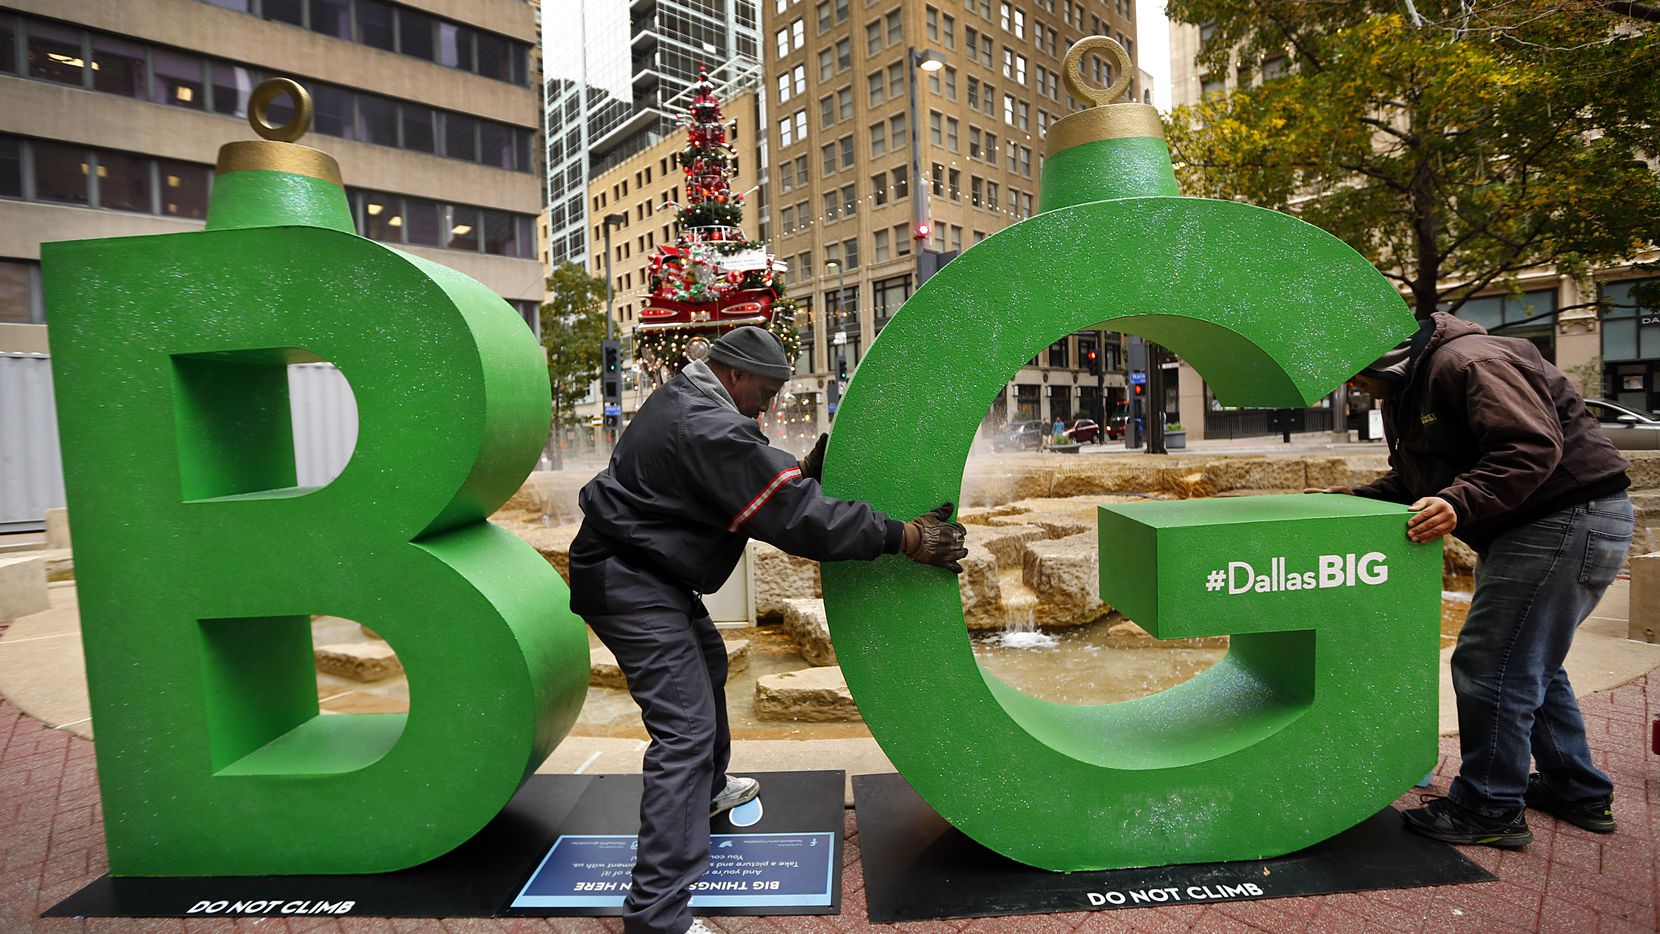 A Christmas-ornament-themed decorations installed at Akard and Main streets downtown in 2013 were part of the Dallas BIG campaign by VisitDallas, the city's tourism arm. (Tom Fox/The Dallas Morning News)